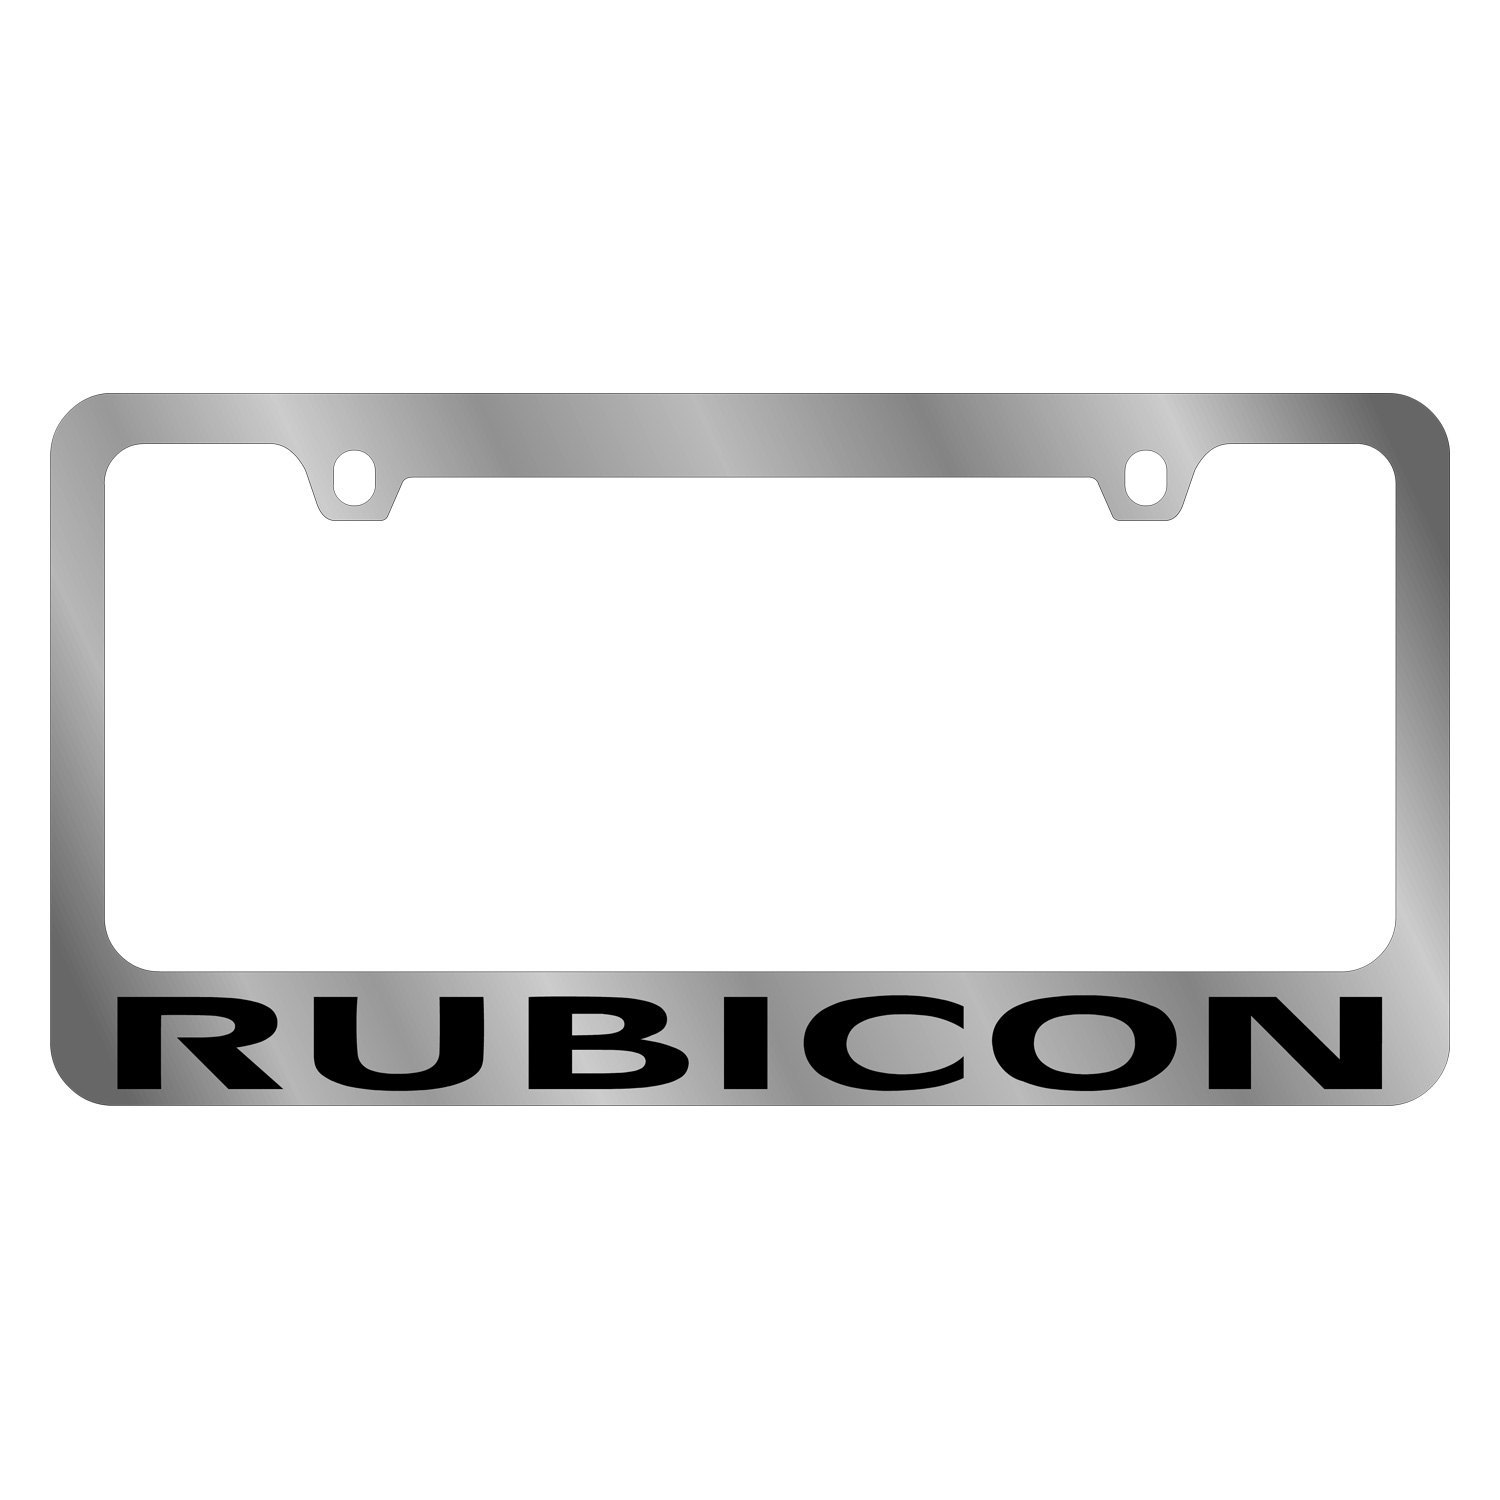 daytona 5440wo bk mopar license plate frame with jeep rubicon logo. Cars Review. Best American Auto & Cars Review